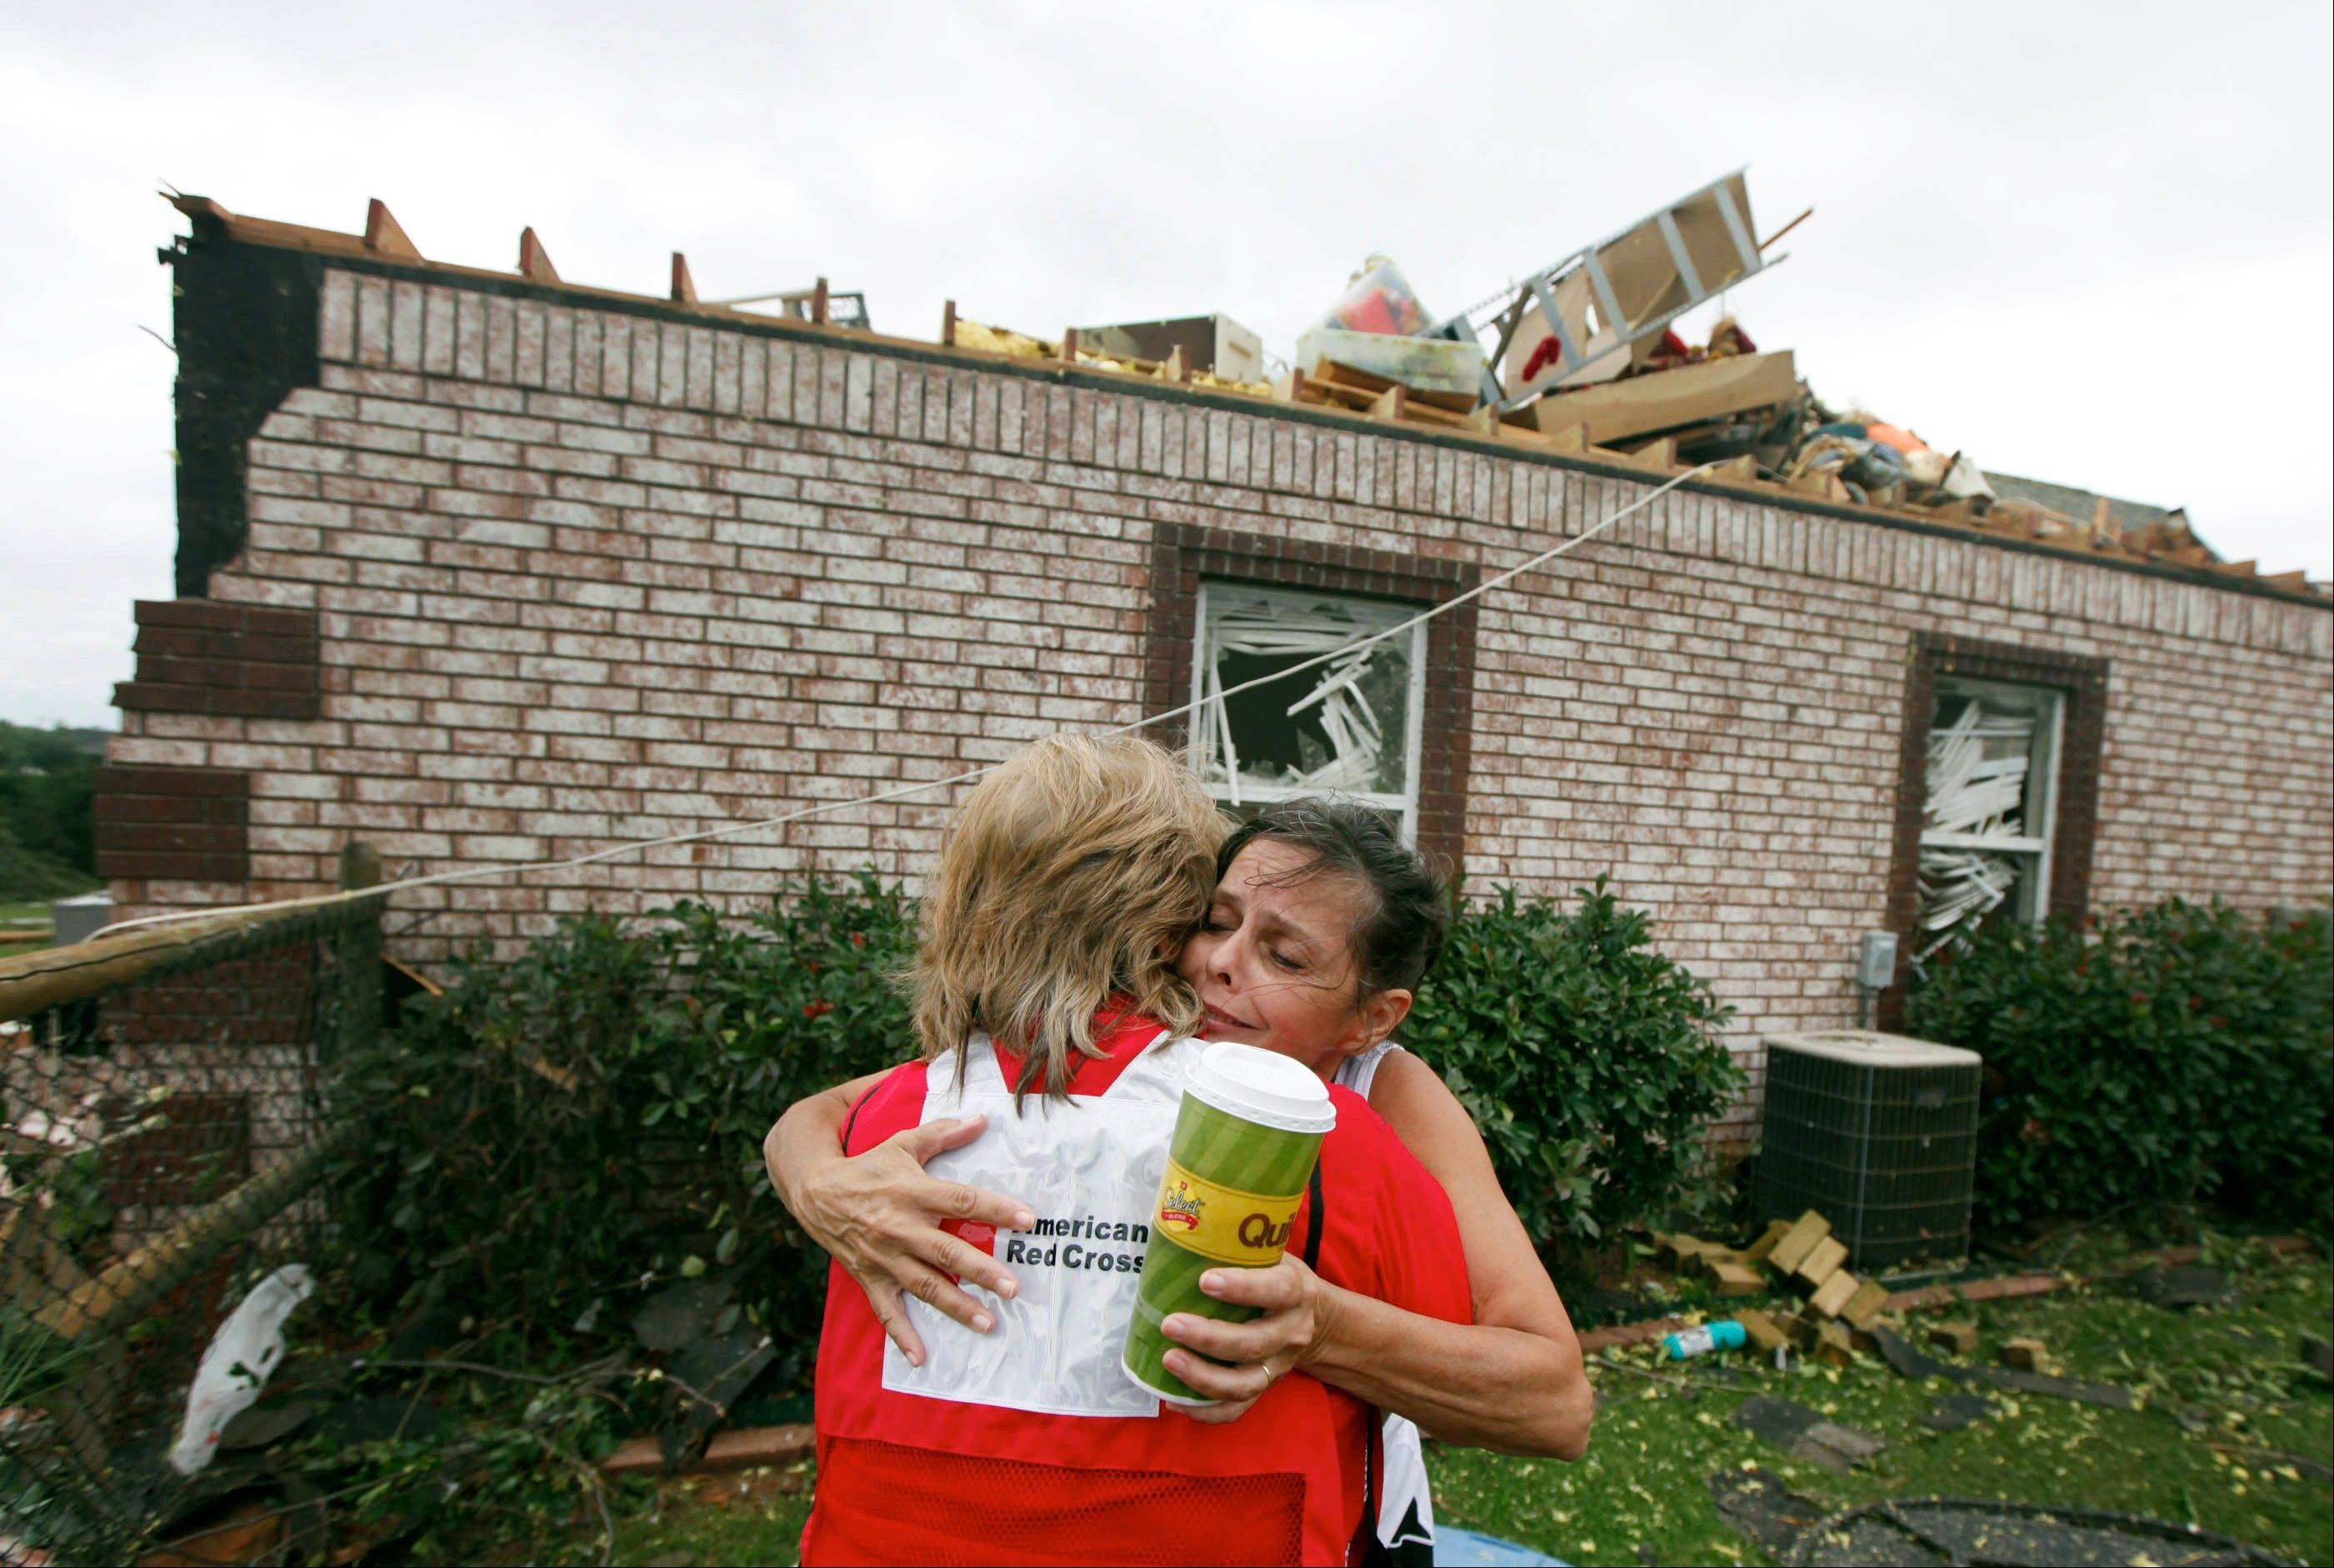 Belinda Russell hugs Red Cross worker Sue Morey Friday after surveying damage to her home in the Rolling Meadow Estates neighborhood in Broken Arrow, Okla. after a tornado passed the area overnight. Residents braced again for bad weathr Friday night as a powerful storm system spawned numerous tornadoes.